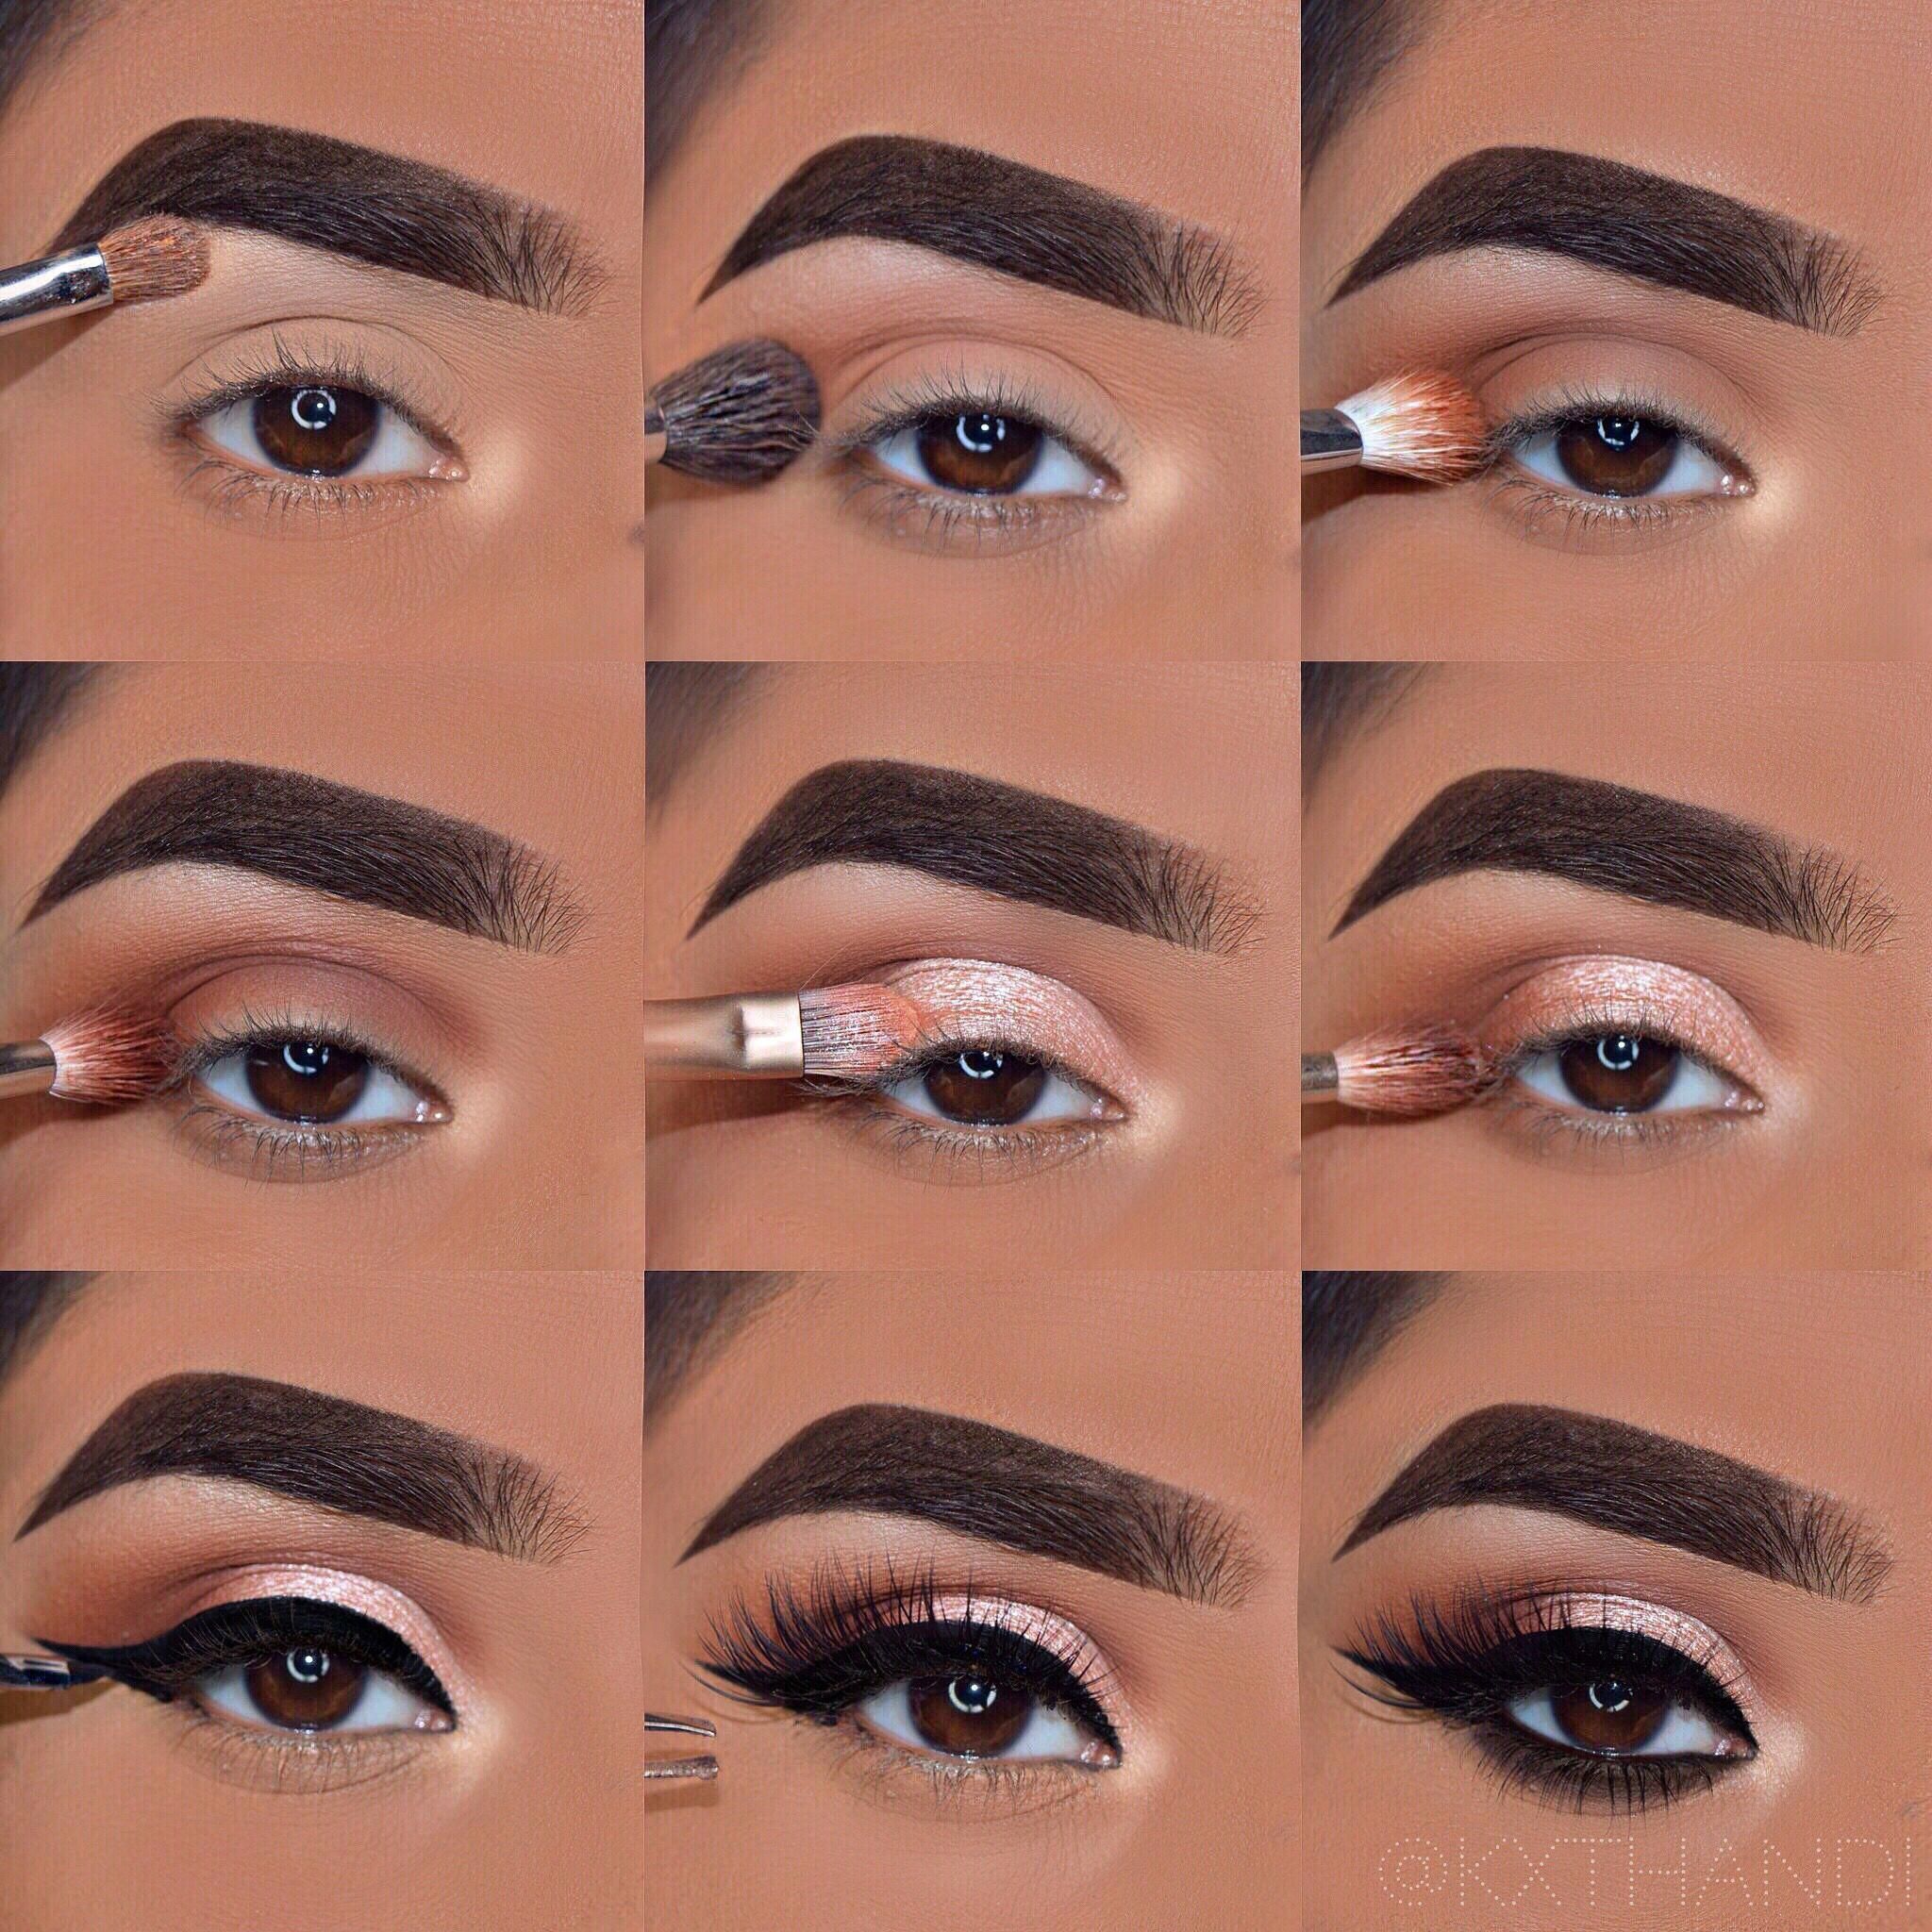 Makeup Step by Step Tutorial. Everyday GLAM